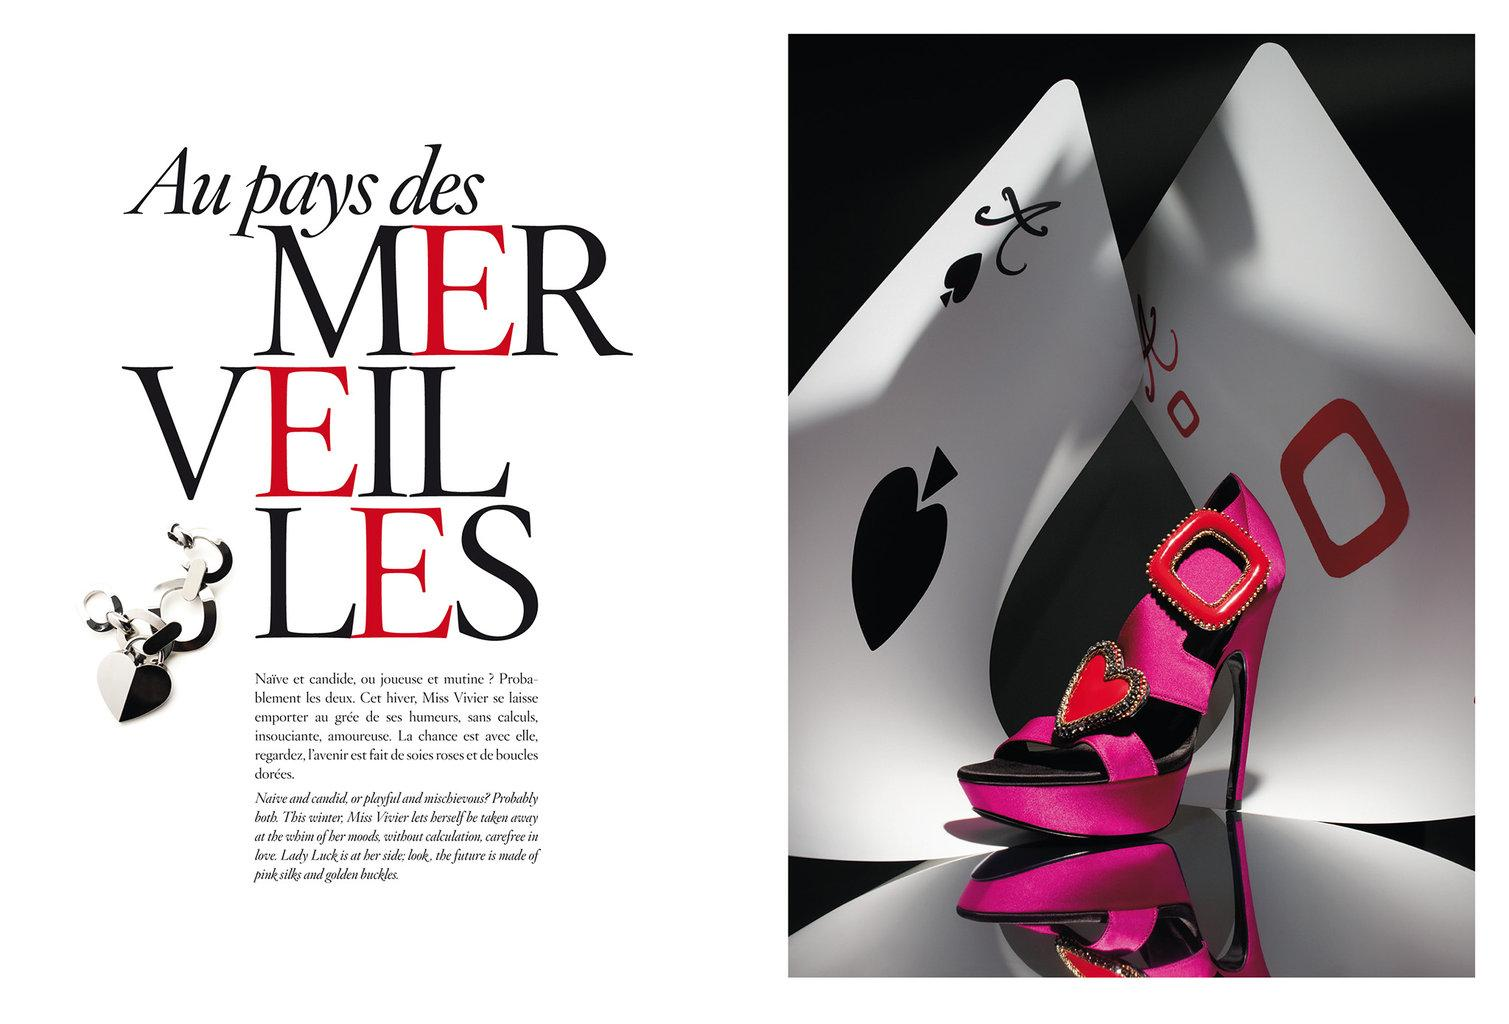 Clément Nachbauer - Catalogue - Roger Vivier - Fall Winter 2009 - 2010